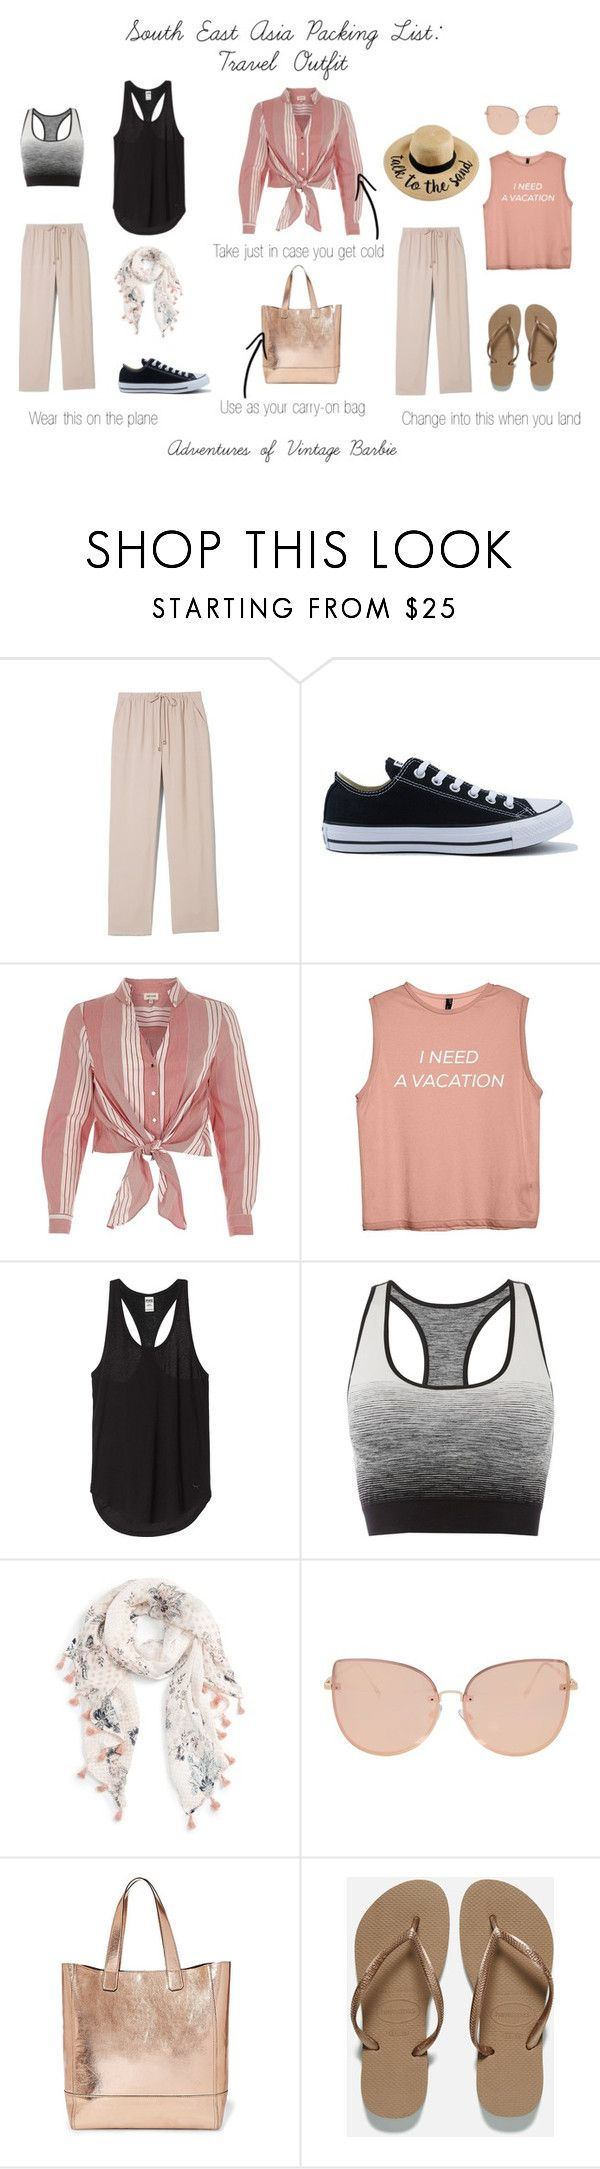 """""""South East Asia Packing List: Travel Outfit"""" by vintagebarbie17 on Polyvore featuring Vince Camuto, Converse, River Island, Pepper & Mayne, Caslon, Topshop, Steve Madden and Havaianas"""